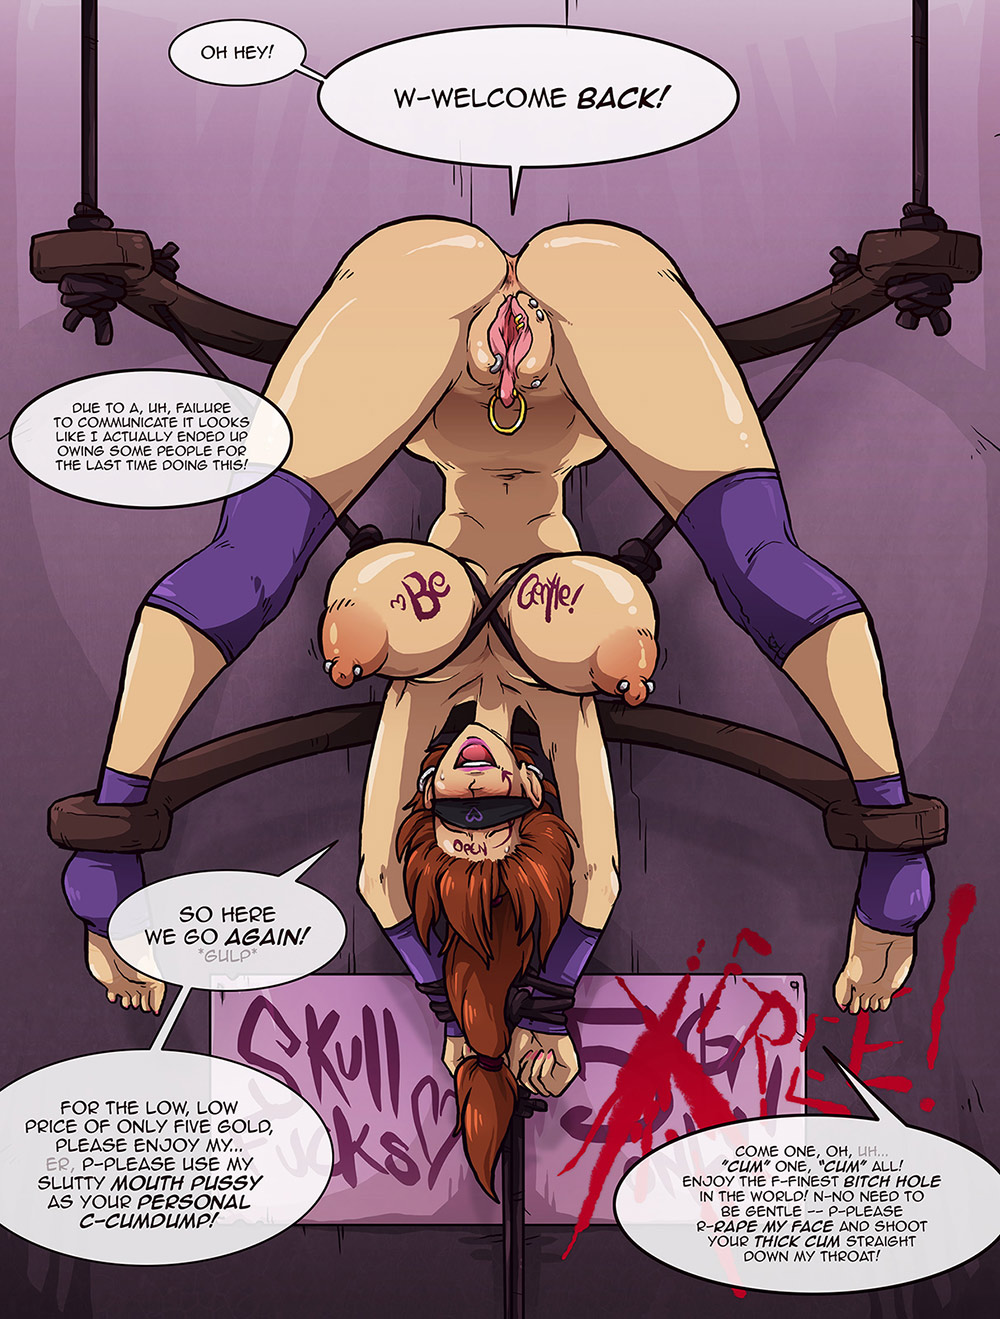 Humiliation (bondage by Sparrow)